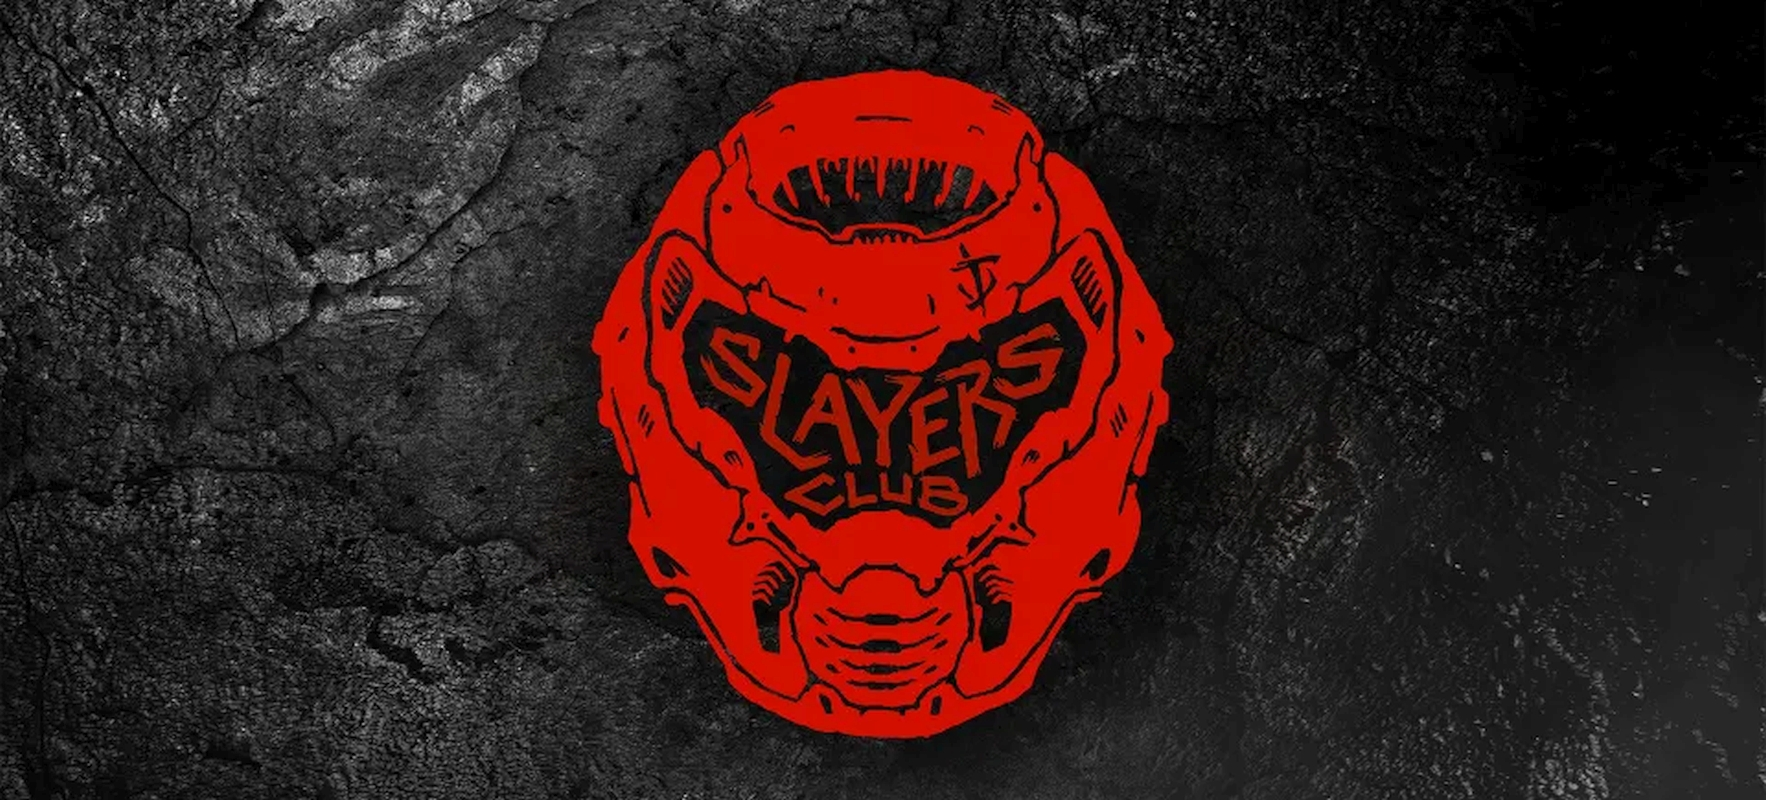 Bethesda Details Changes Coming To DOOM Slayers Club In 2020